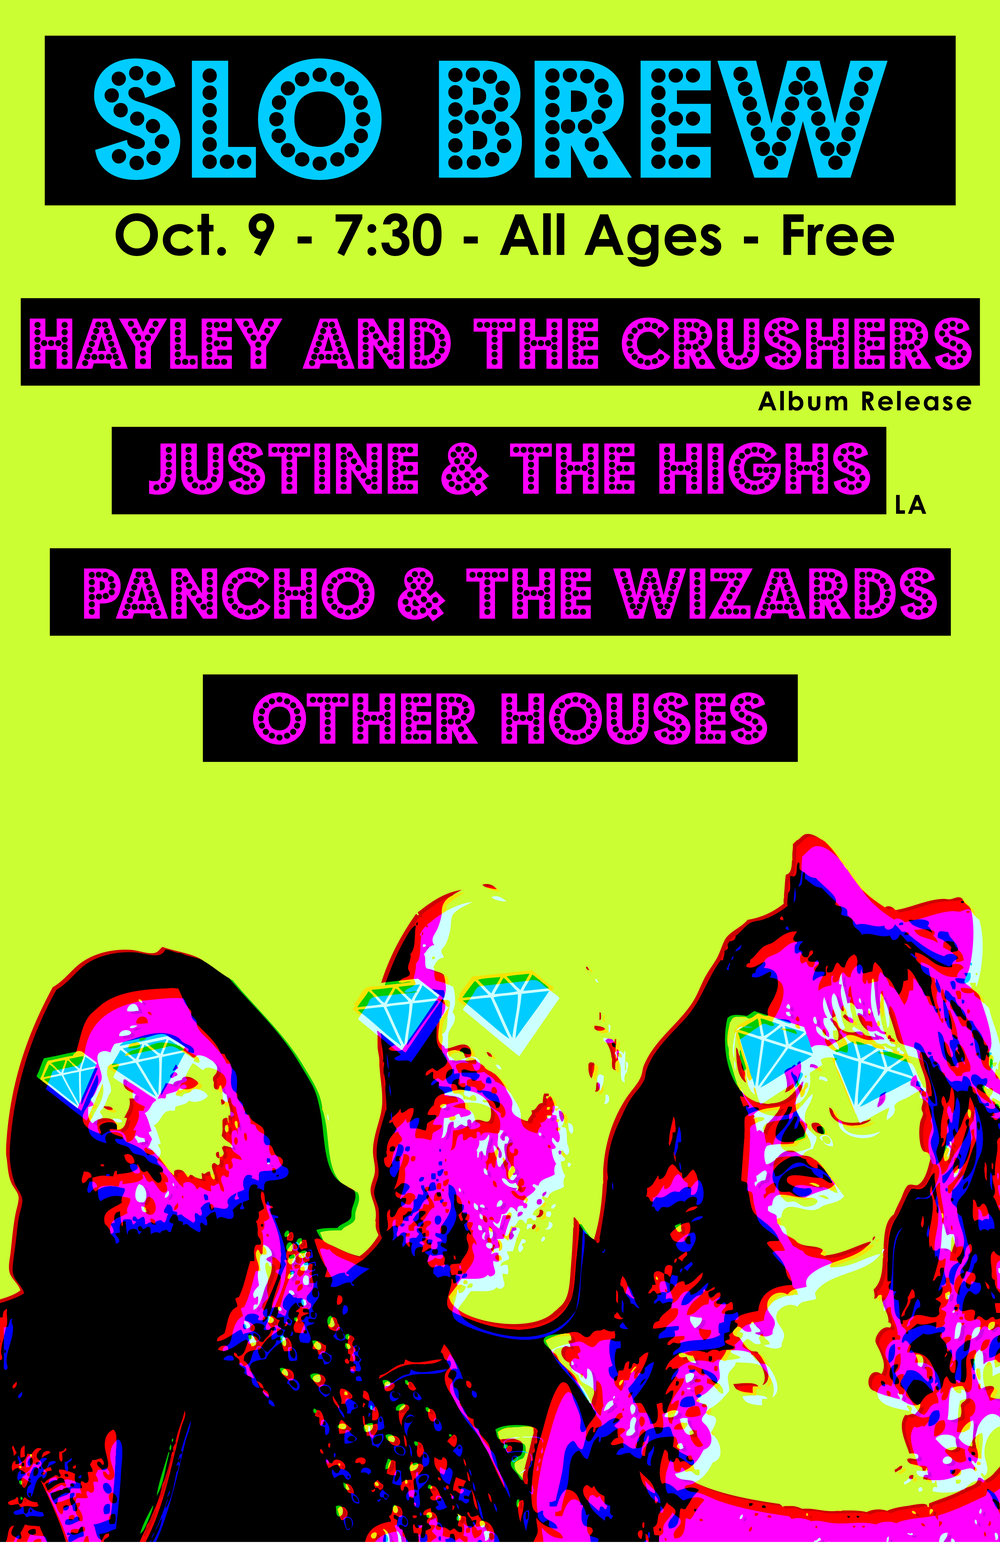 Our friends rule: Listen to  Morgan Enos,   Justine and the Highs,  and  Pancho and the Wizards.